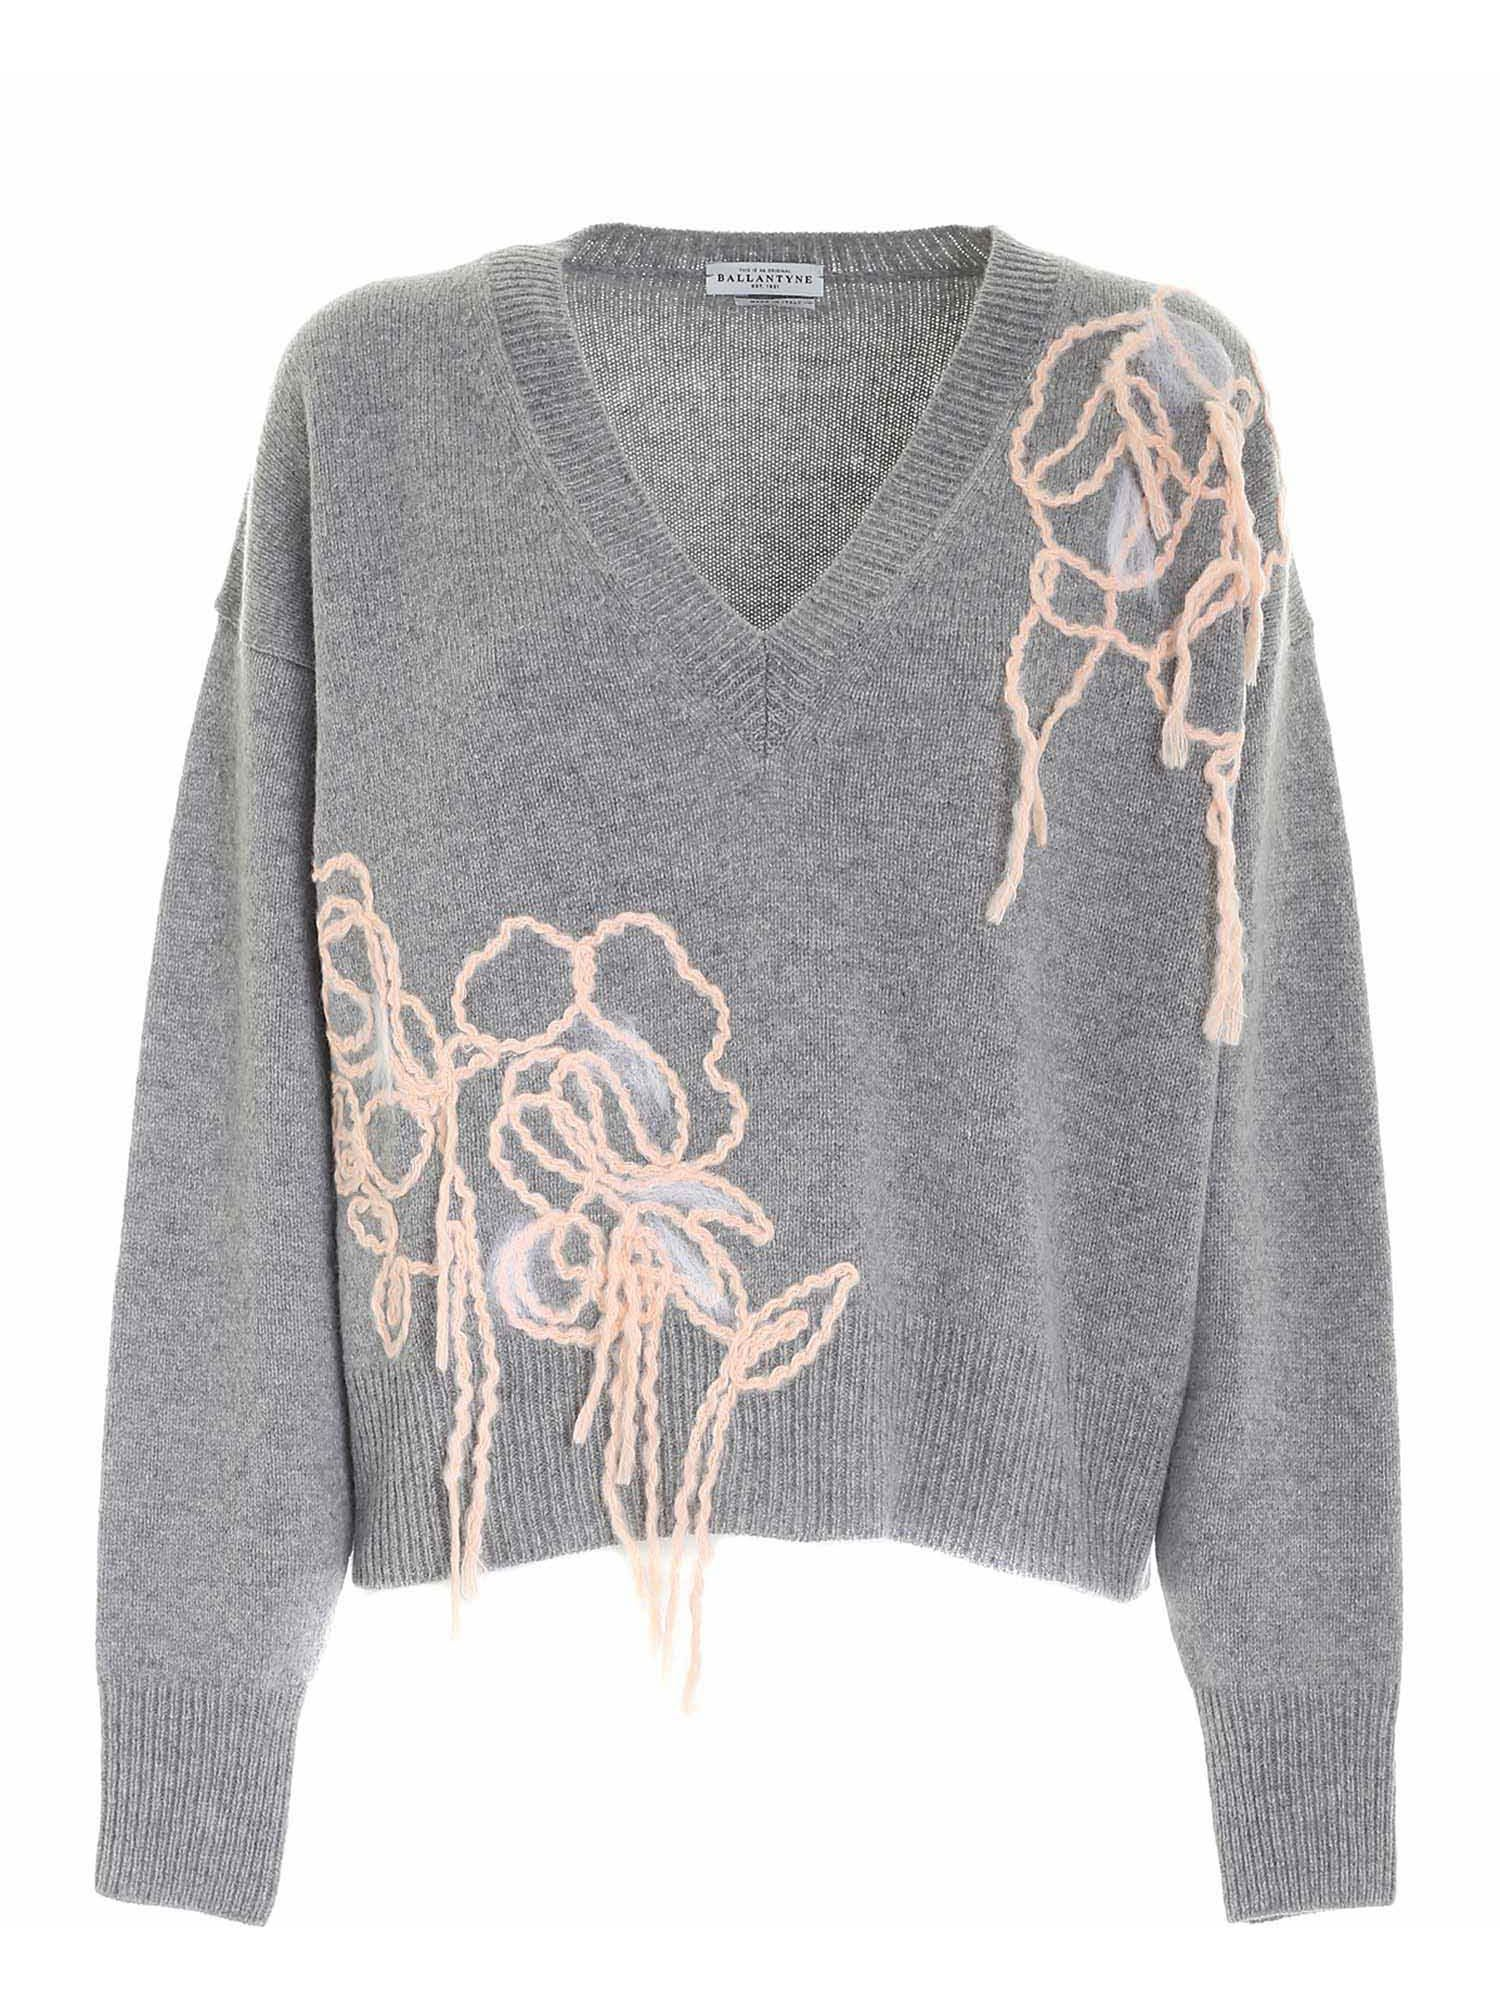 Ballantyne POWDER PINK EMBROIDERY PULLOVER IN MELANGE GREY